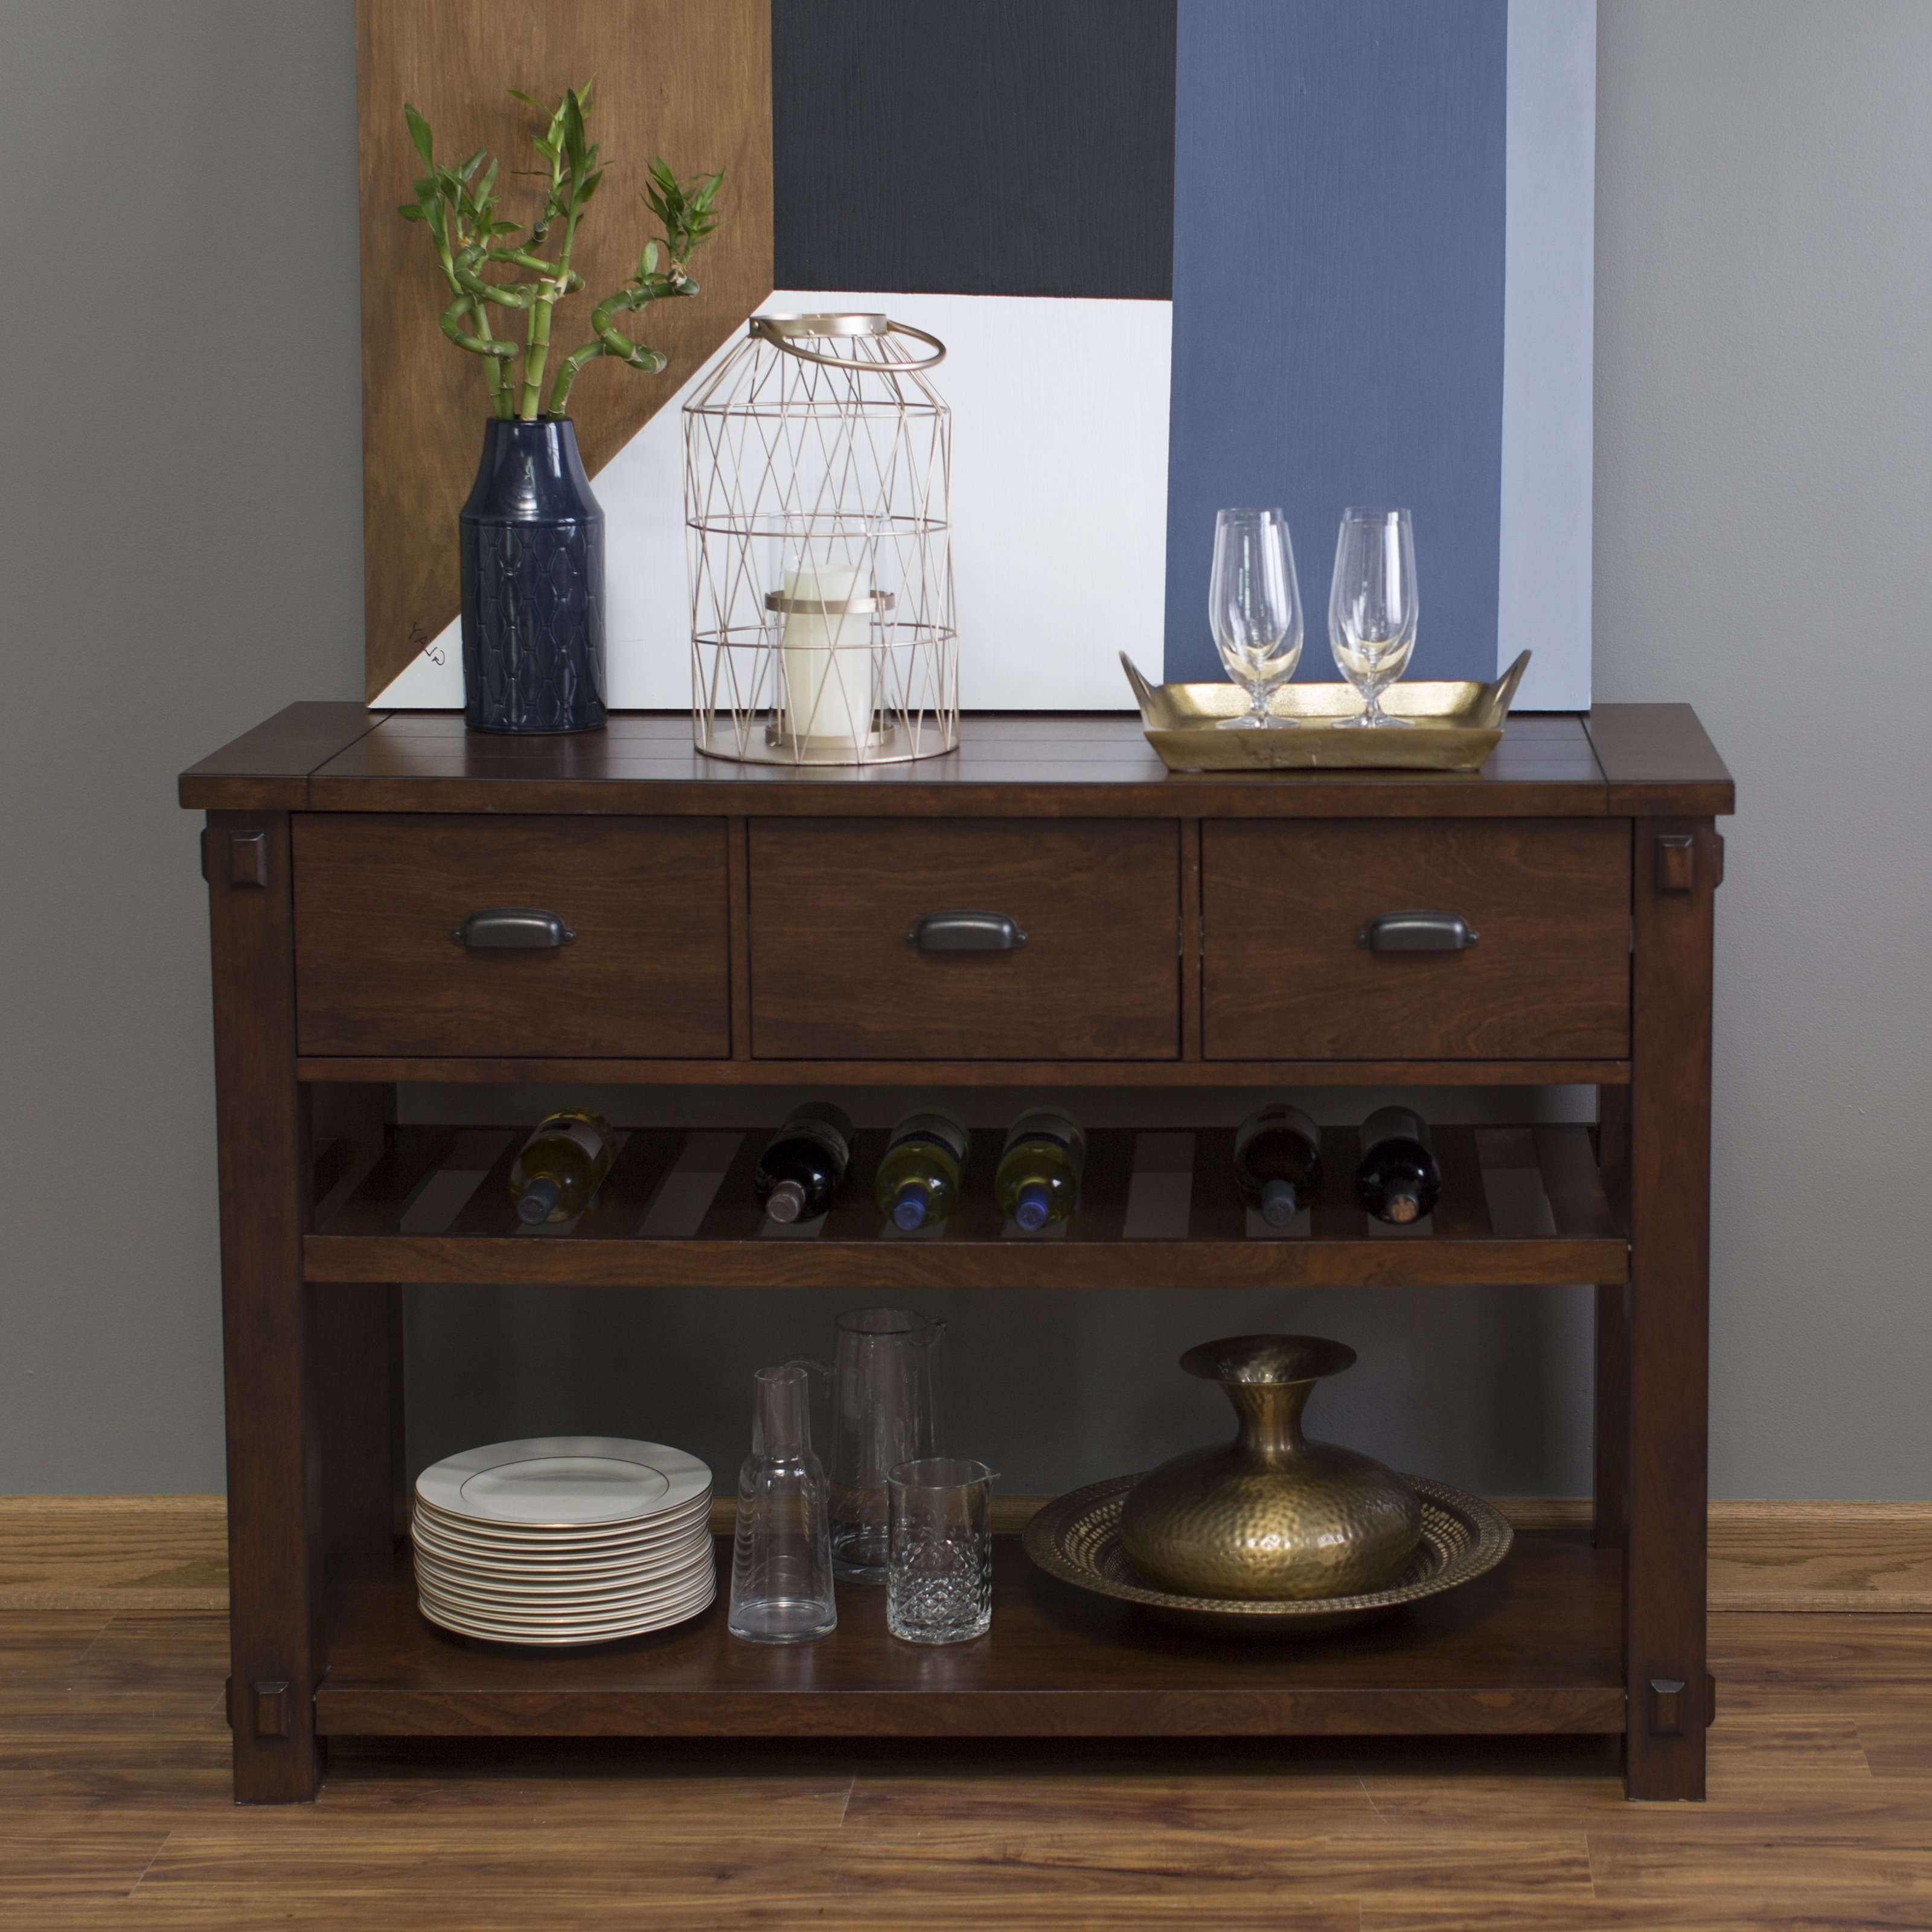 Sideboards & Buffets | Hayneedle Inside Sideboards Buffet Furniture (View 12 of 20)